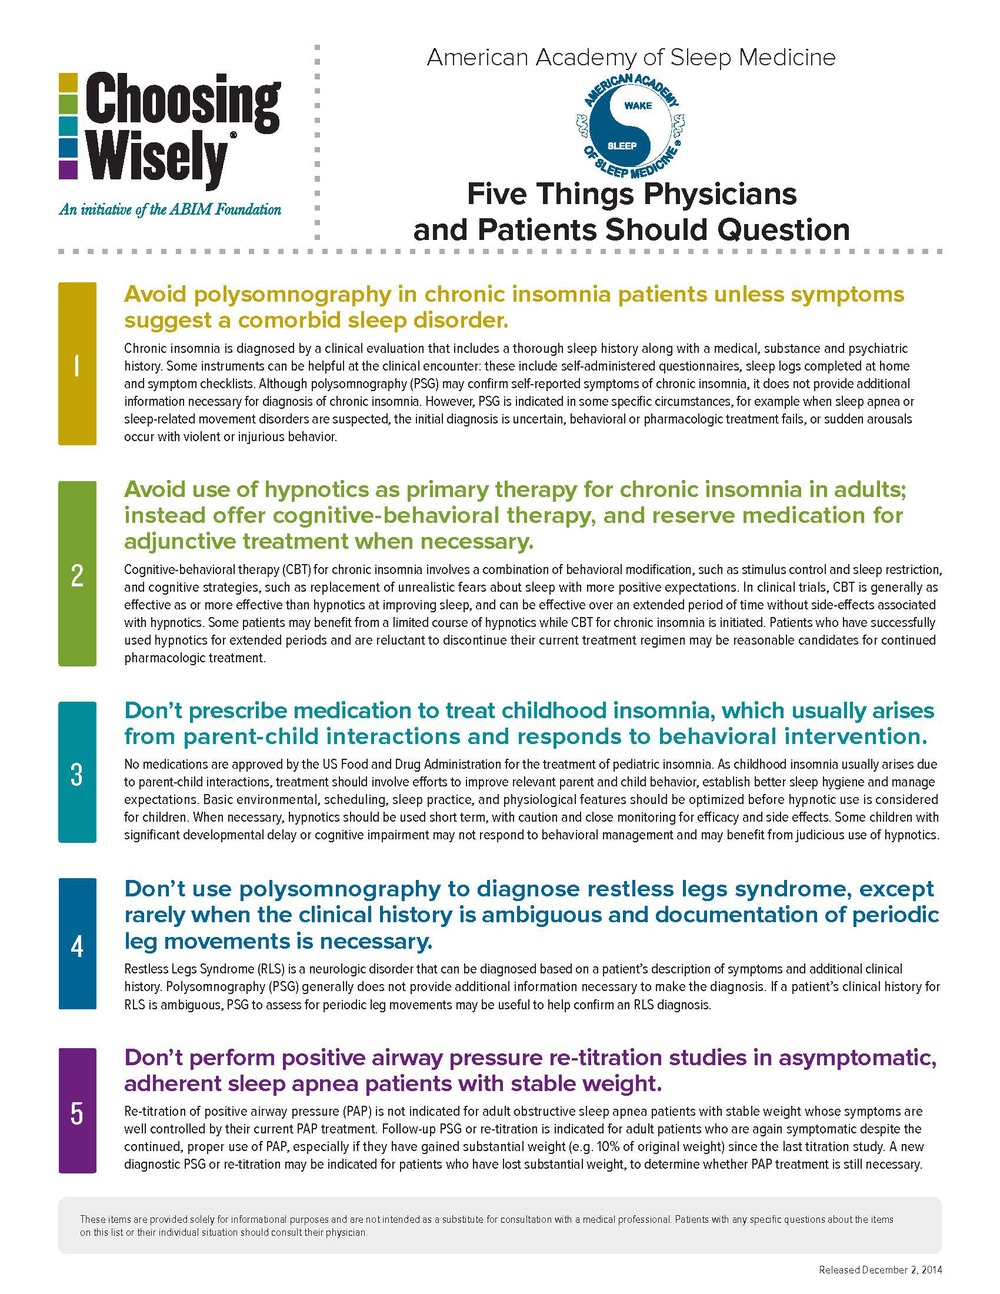 ChoosingWisely-sleepmedicine_Page_1.jpg